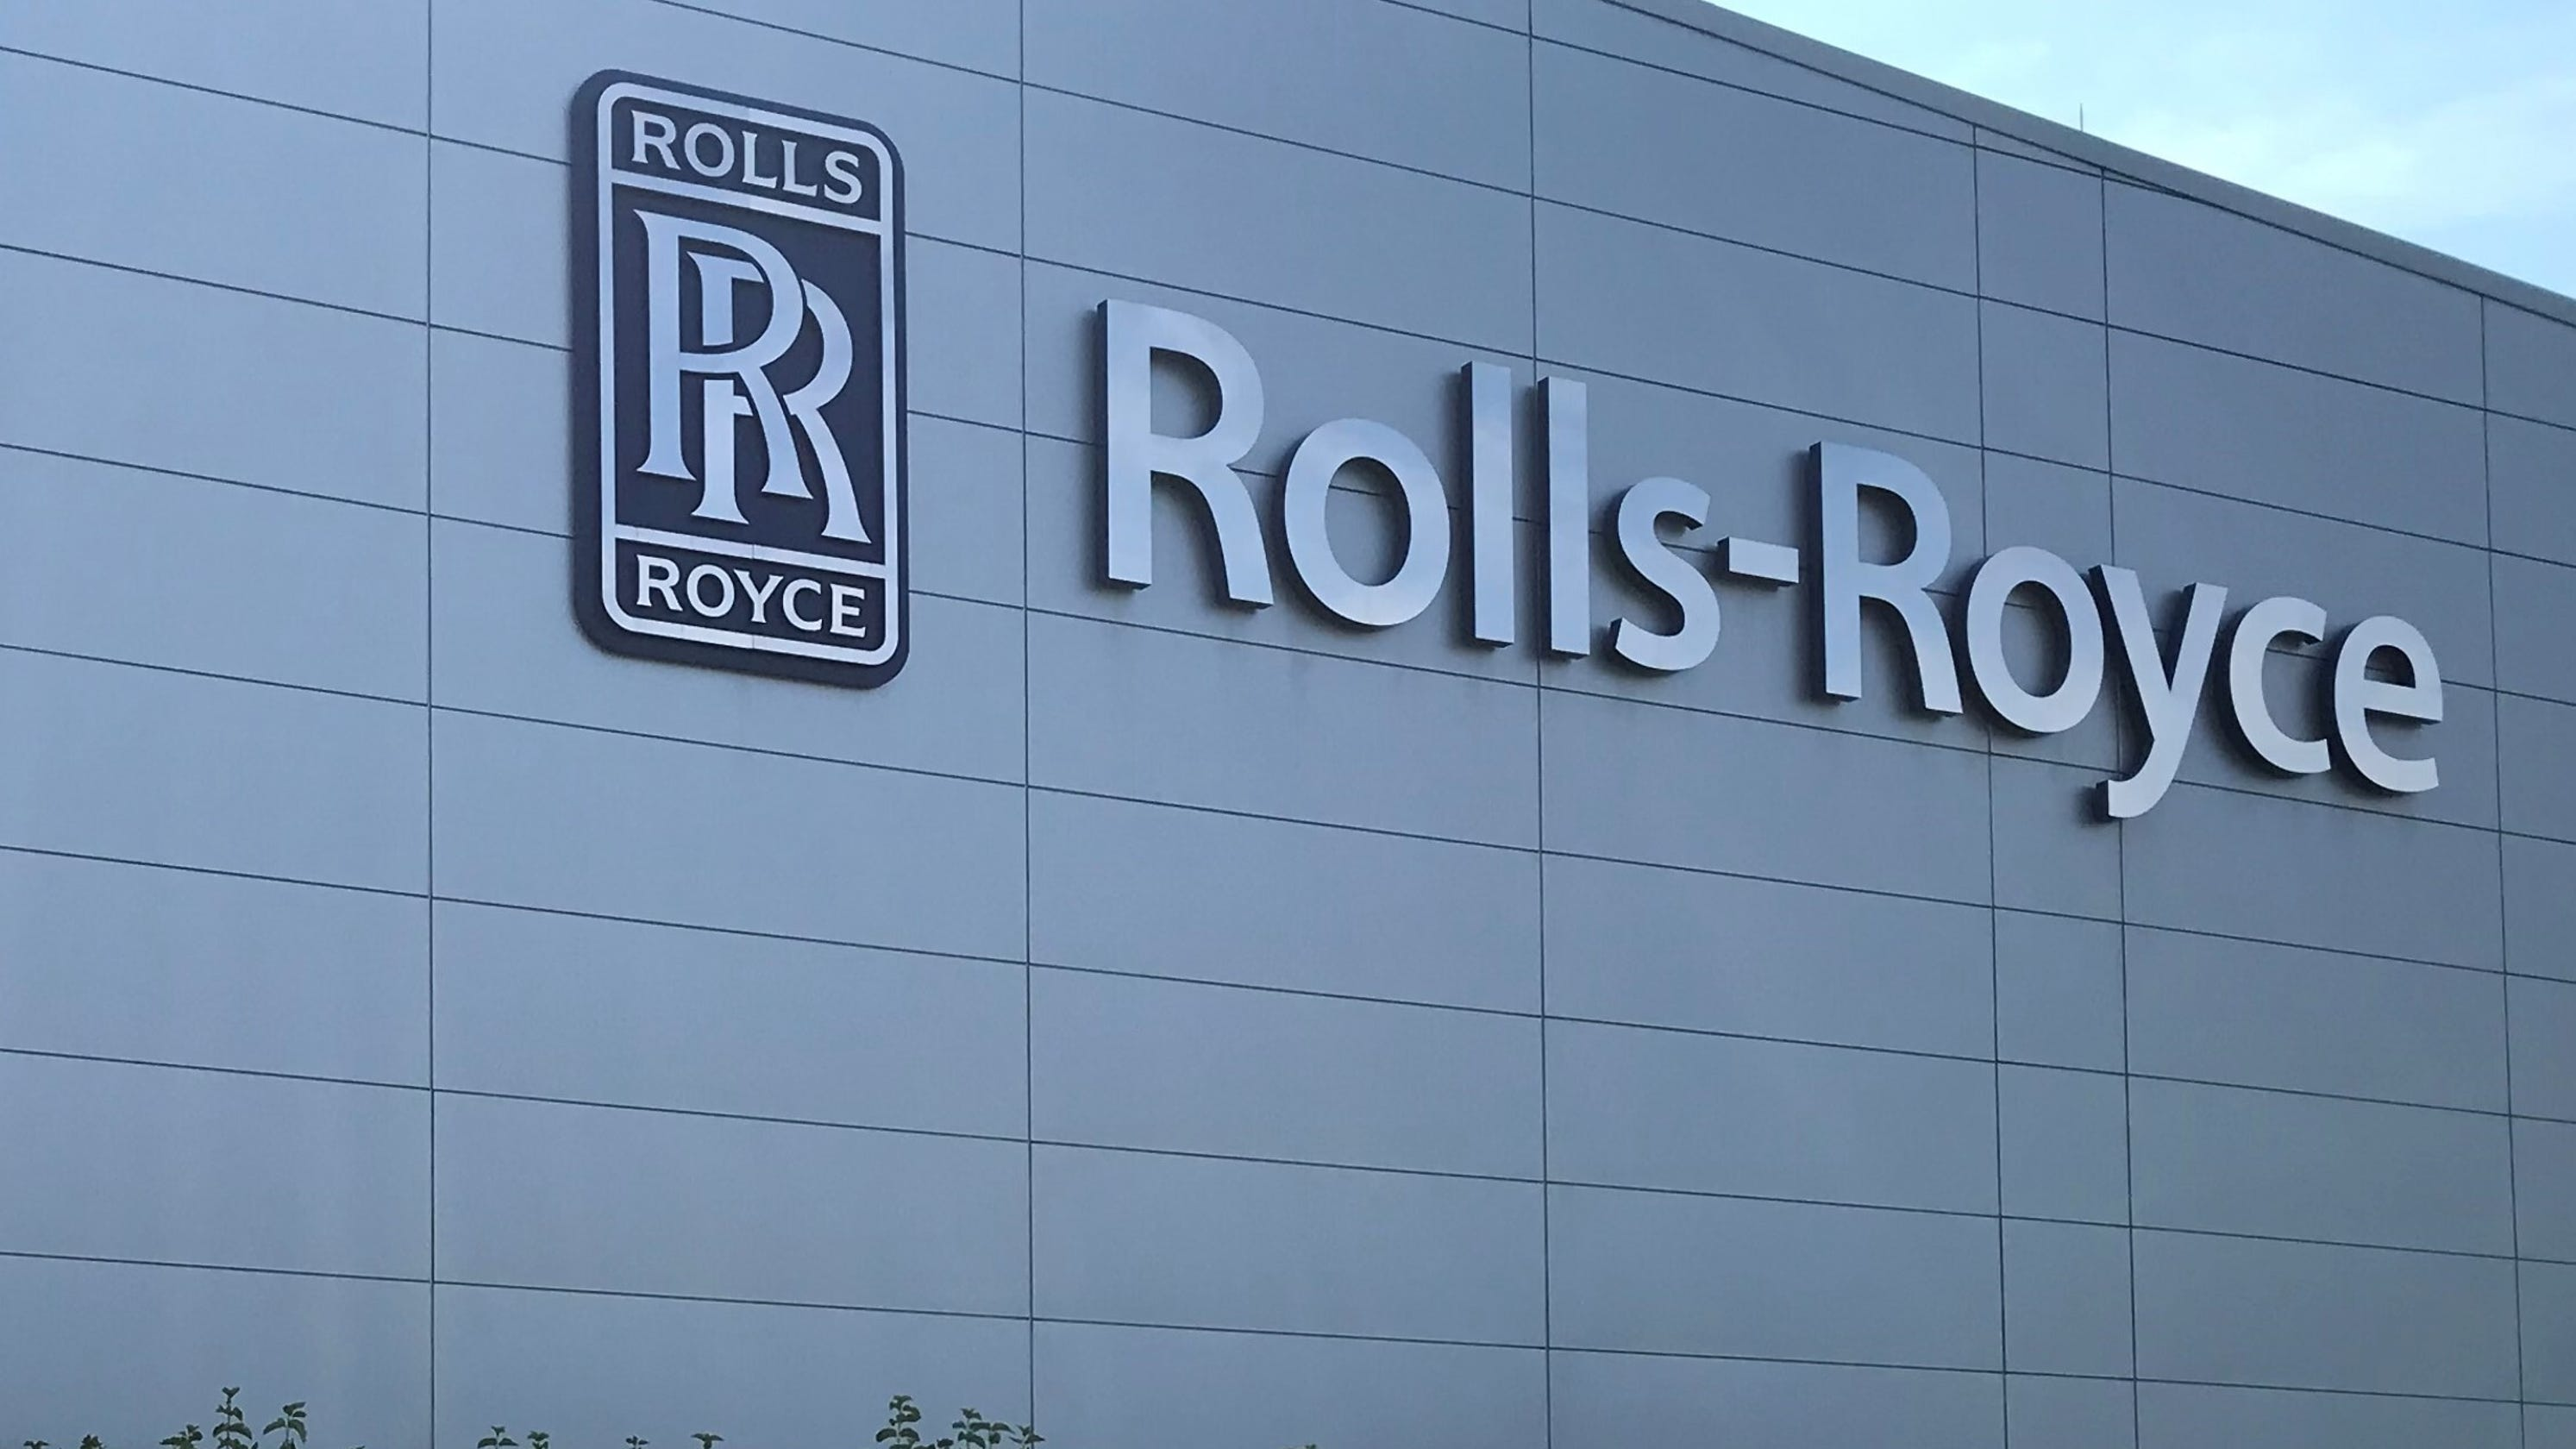 Rolls-Royce to close its Prince George, Virginia plant, cut 280 jobs